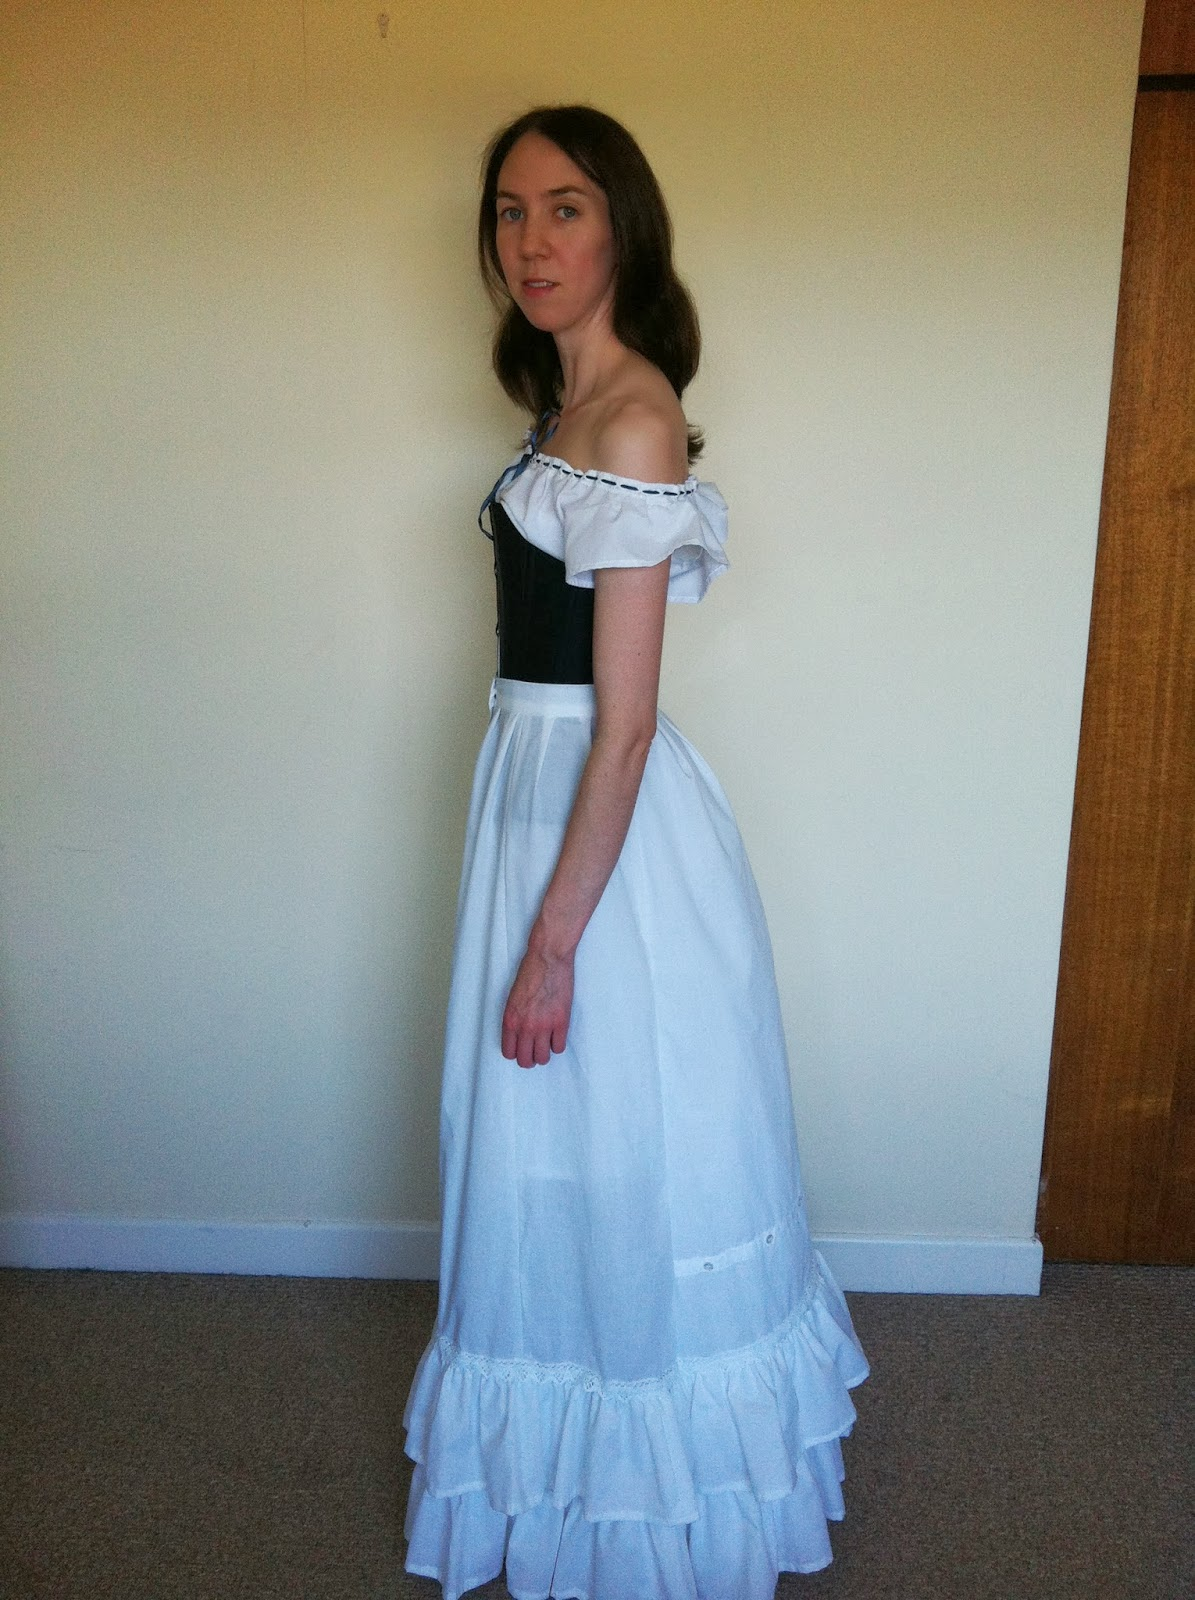 Stitches & Stays: Natural Form Petticoat